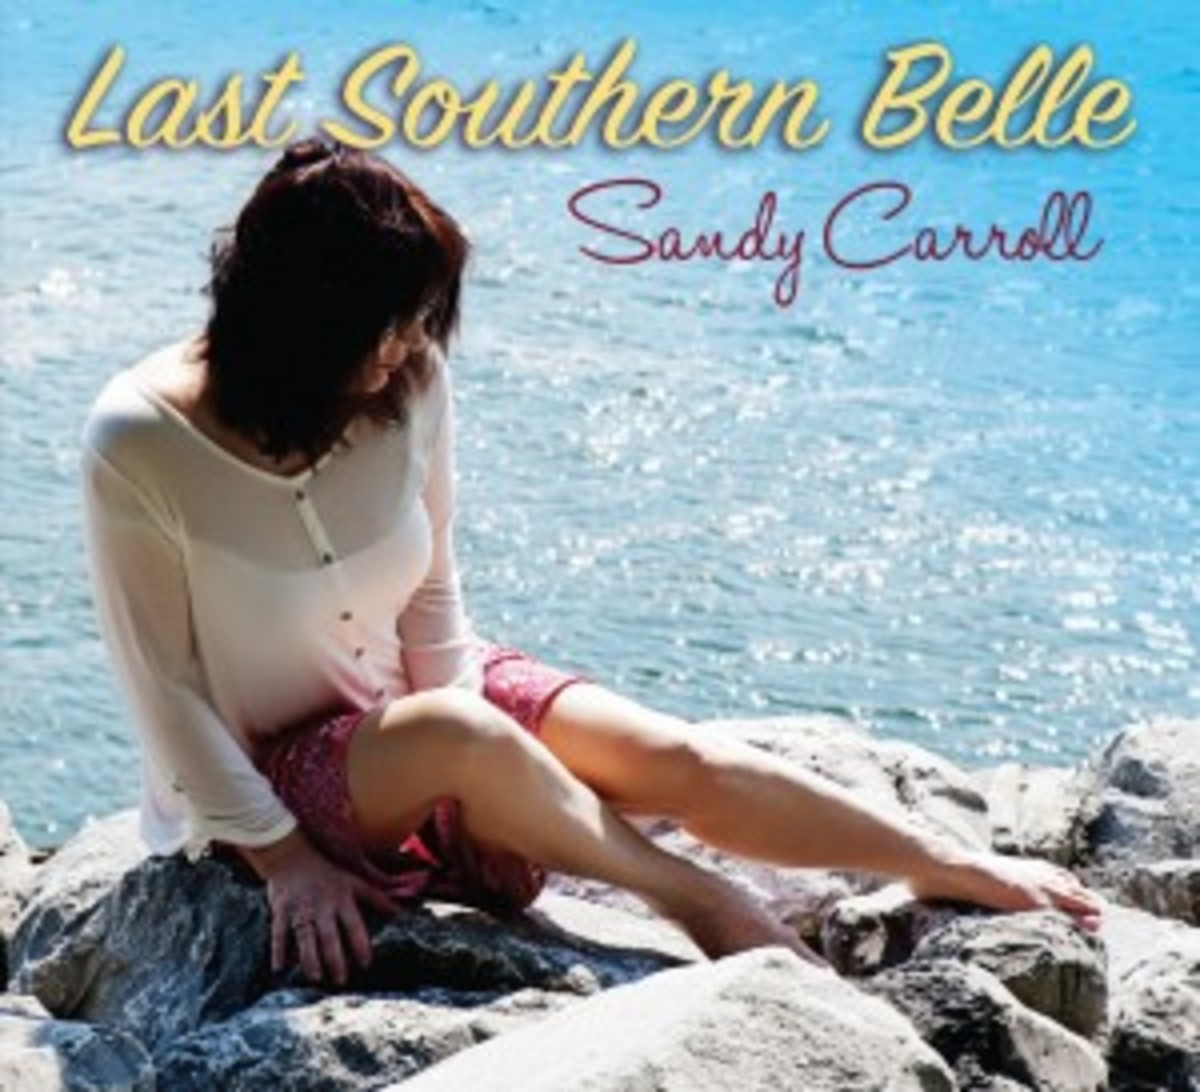 Last Southern Belle Hi-Res Cover